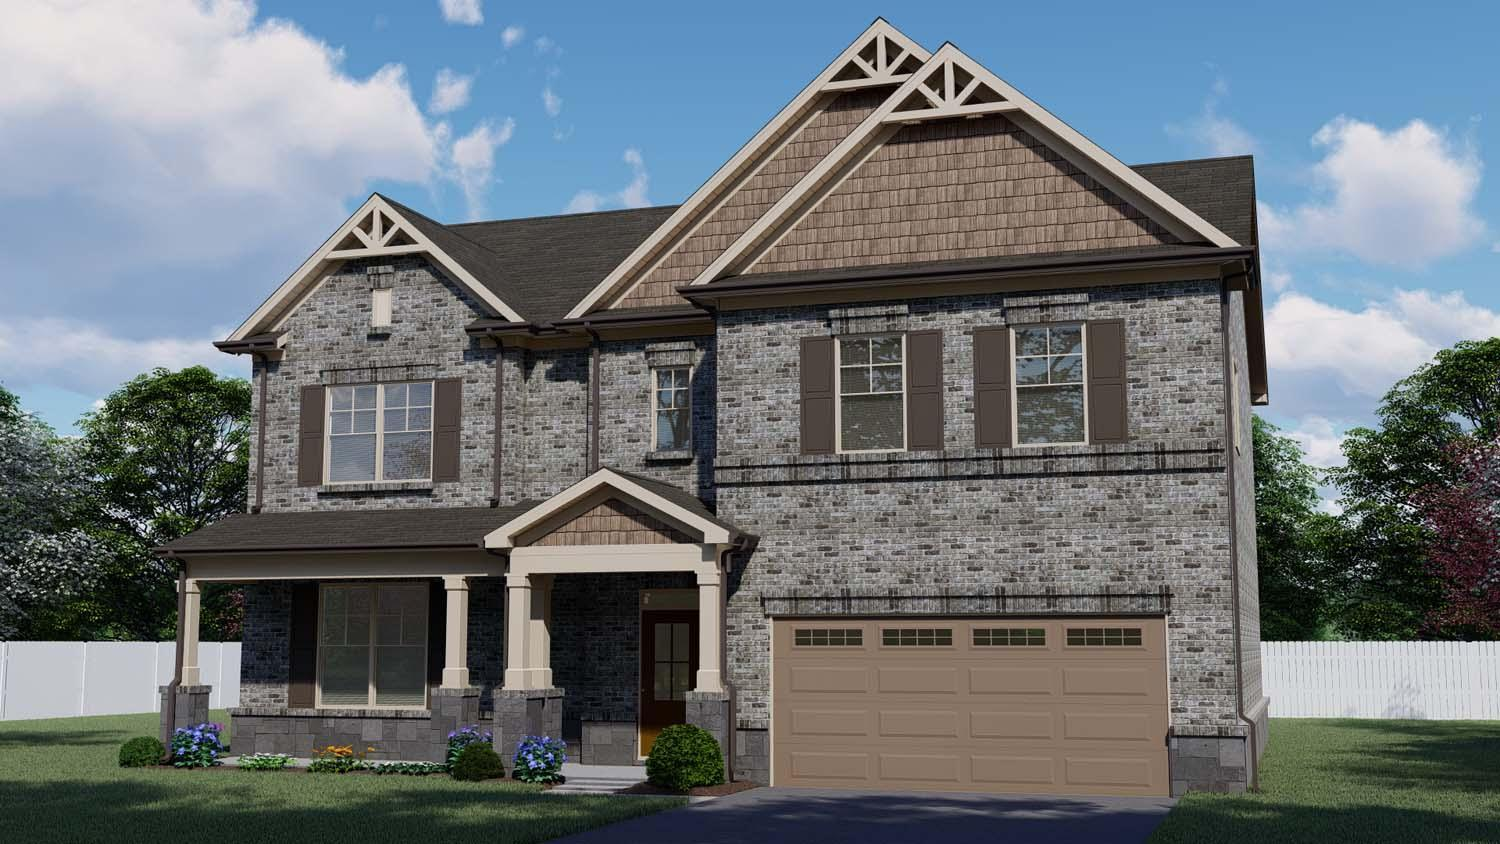 The Bristol by Chafin Communities